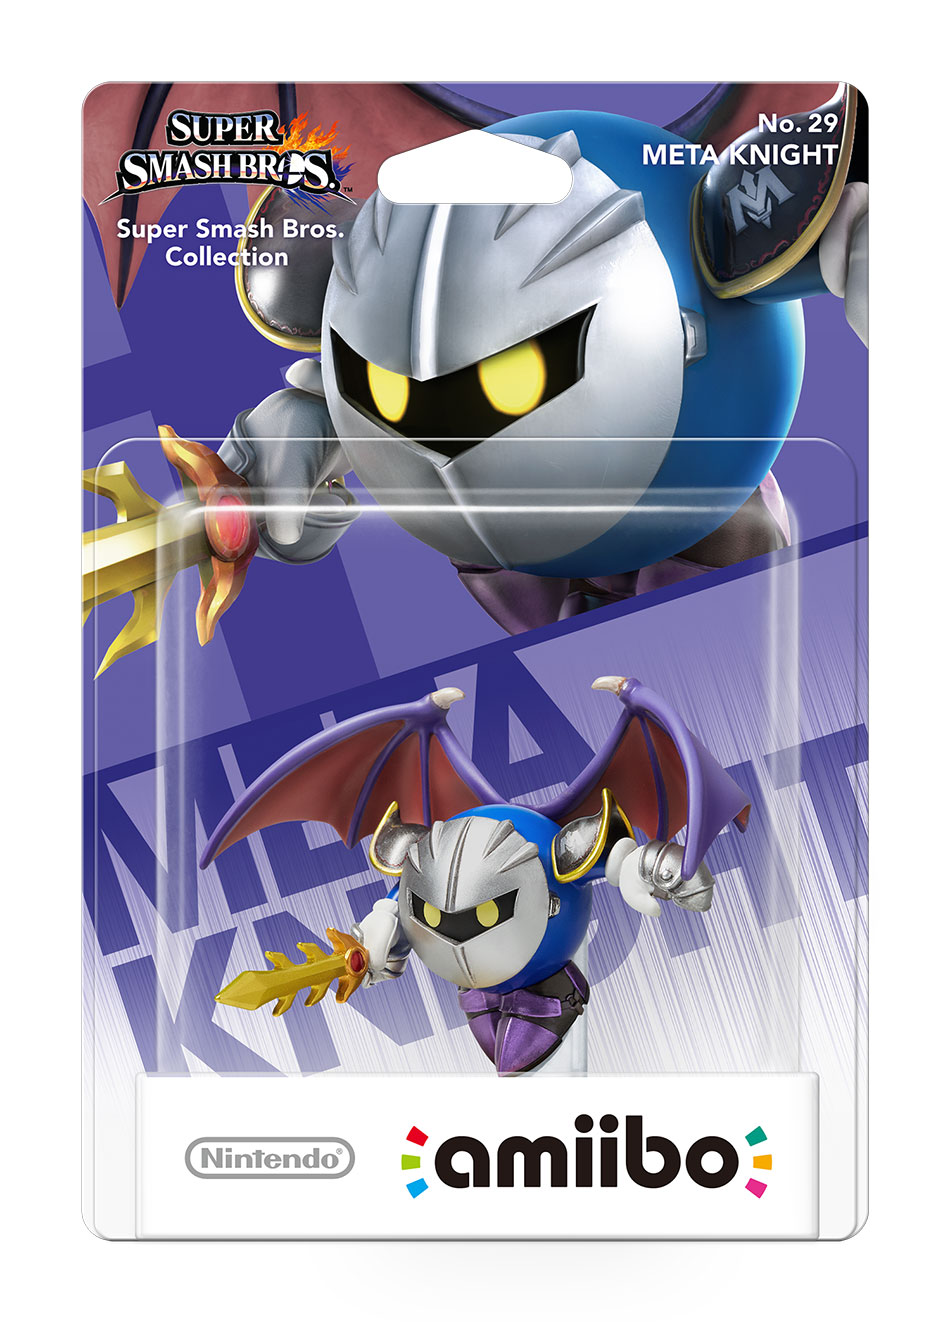 amiibo-no29-metaknight-ps-rgb